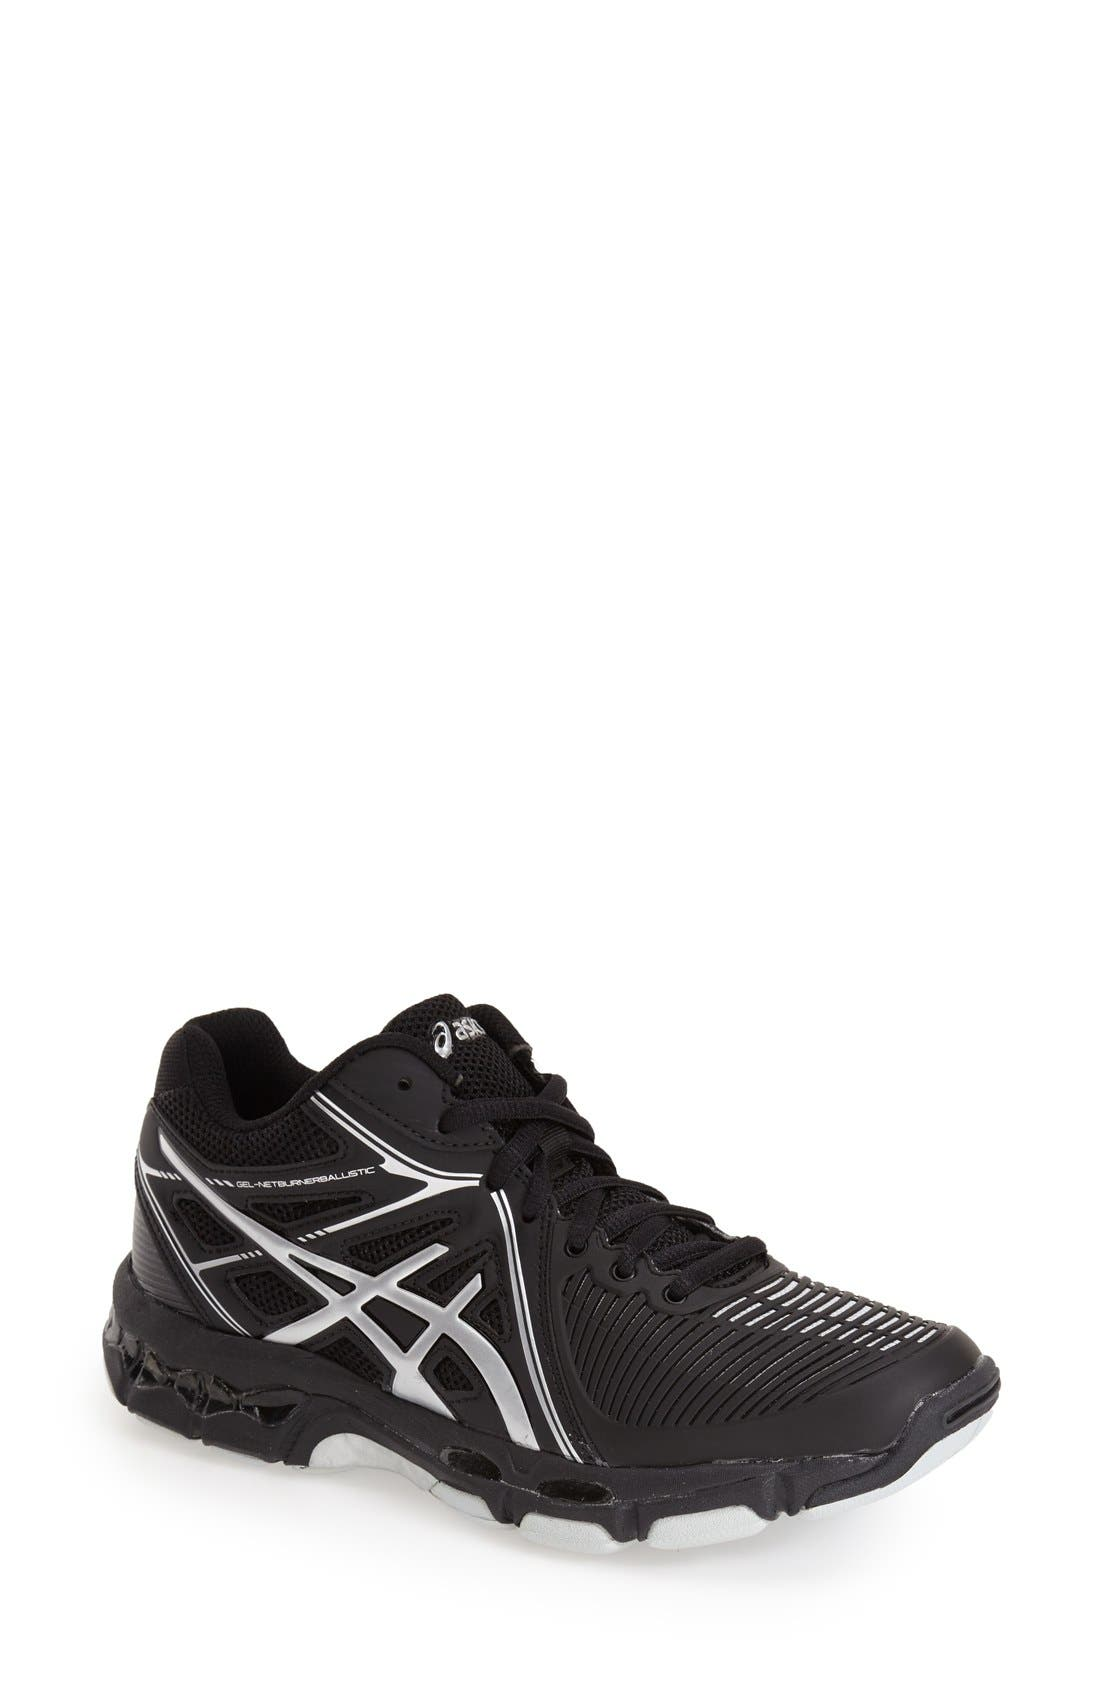 Alternate Image 1 Selected - ASICS® 'GEL-Netburner' Mid Volleyball Shoe (Women)